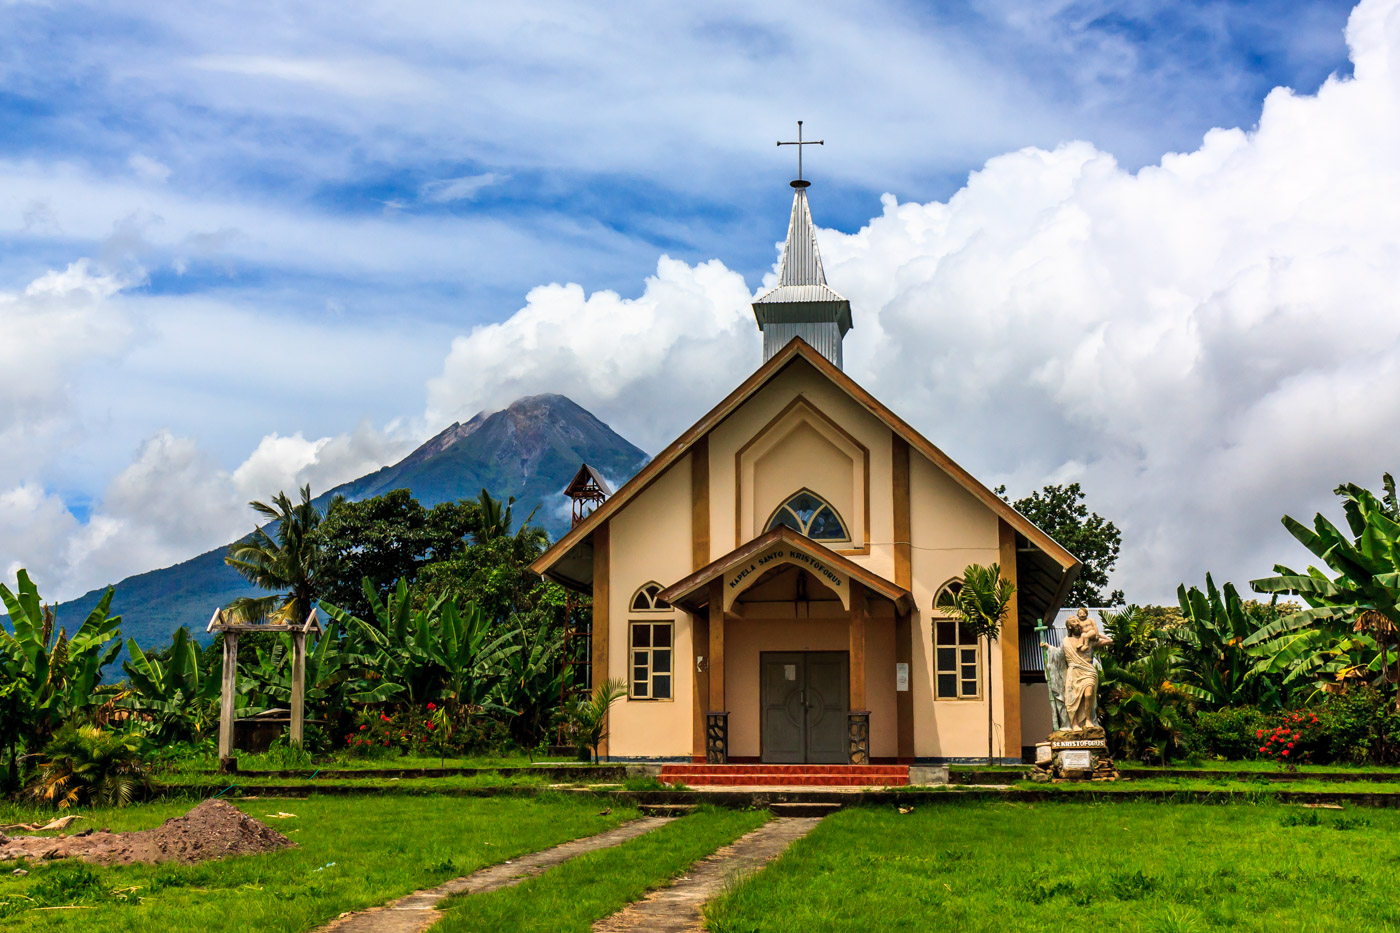 Volcano and church.